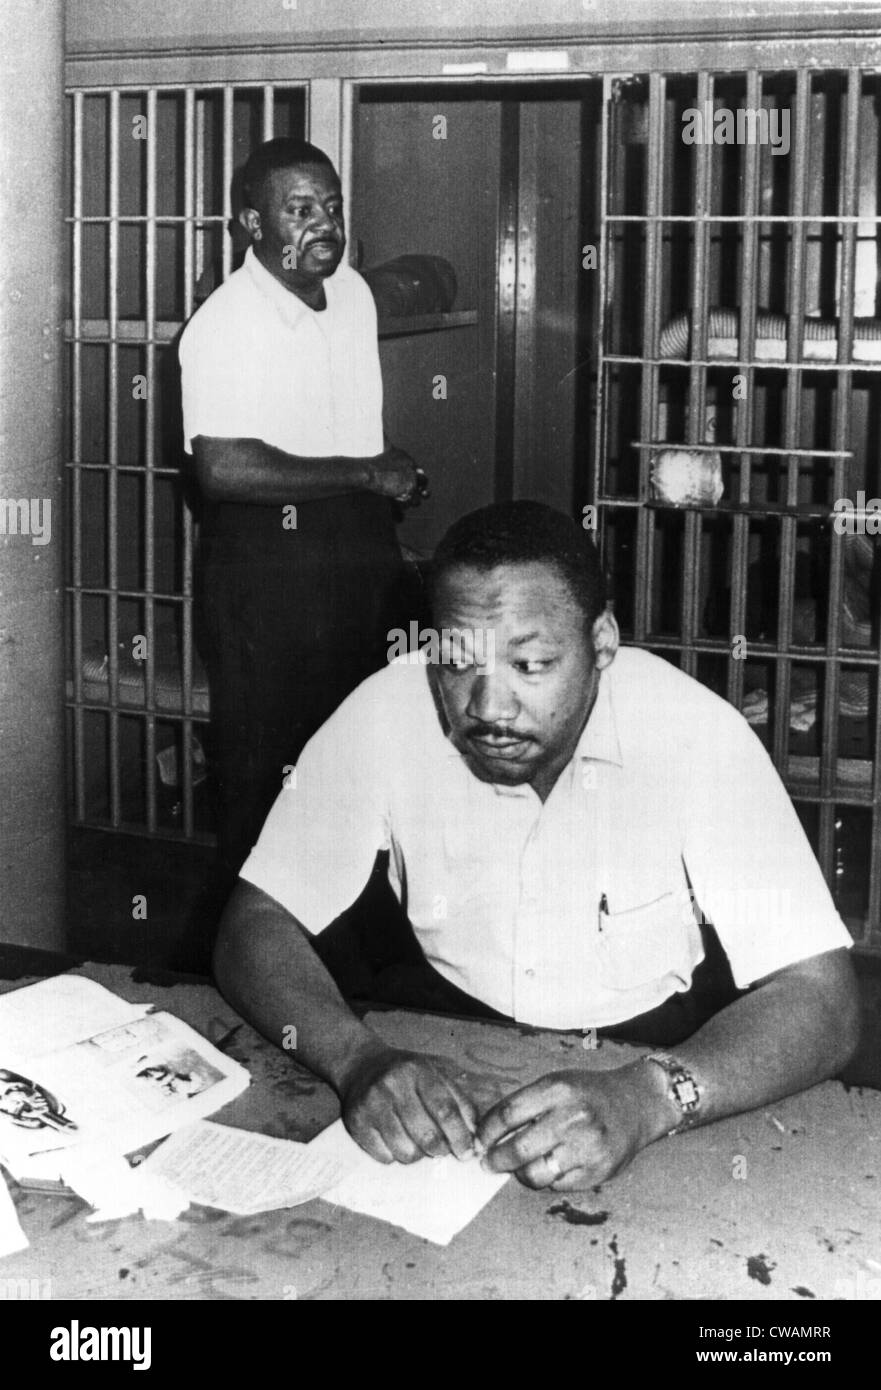 MARTIN LUTHER KING, JR, with Reverend Ralph Abernathy, in St.John's County Jail, Florida, 6/12/62. Everett/CSU Archives. Stock Photo